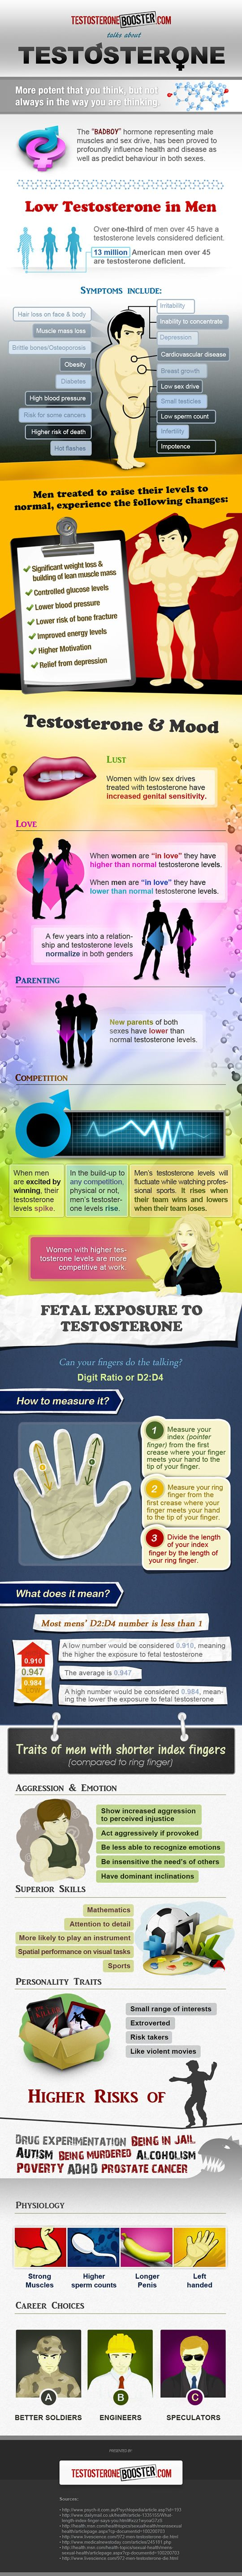 Testosterone: Potent But Not Always In The Way You Think